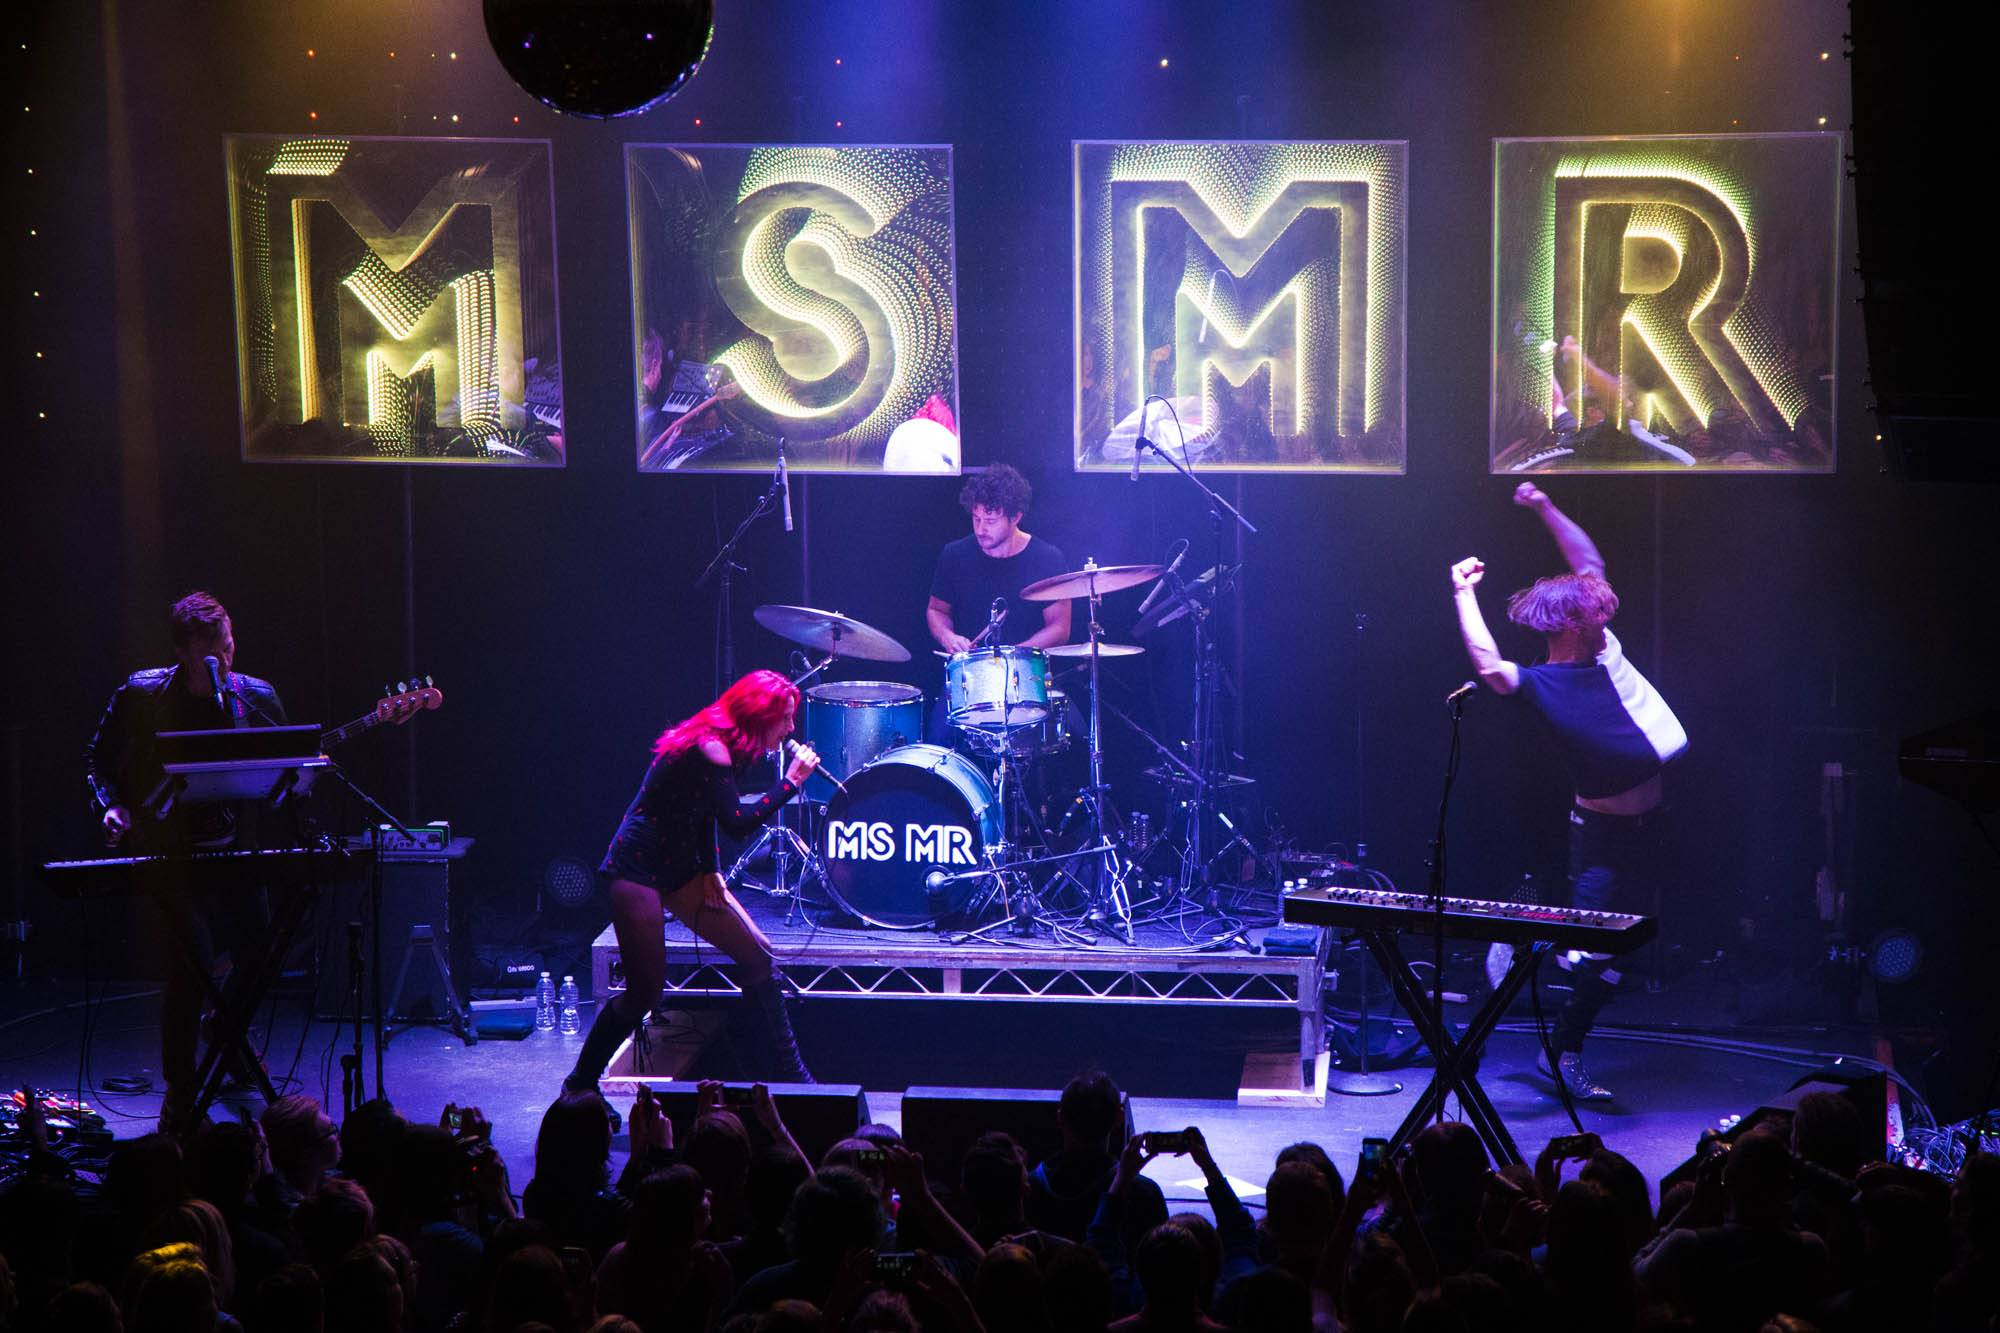 MS MR at Venue Nightclub, Vancouver, Oct 19 2015. Kirk Chantraine photo.